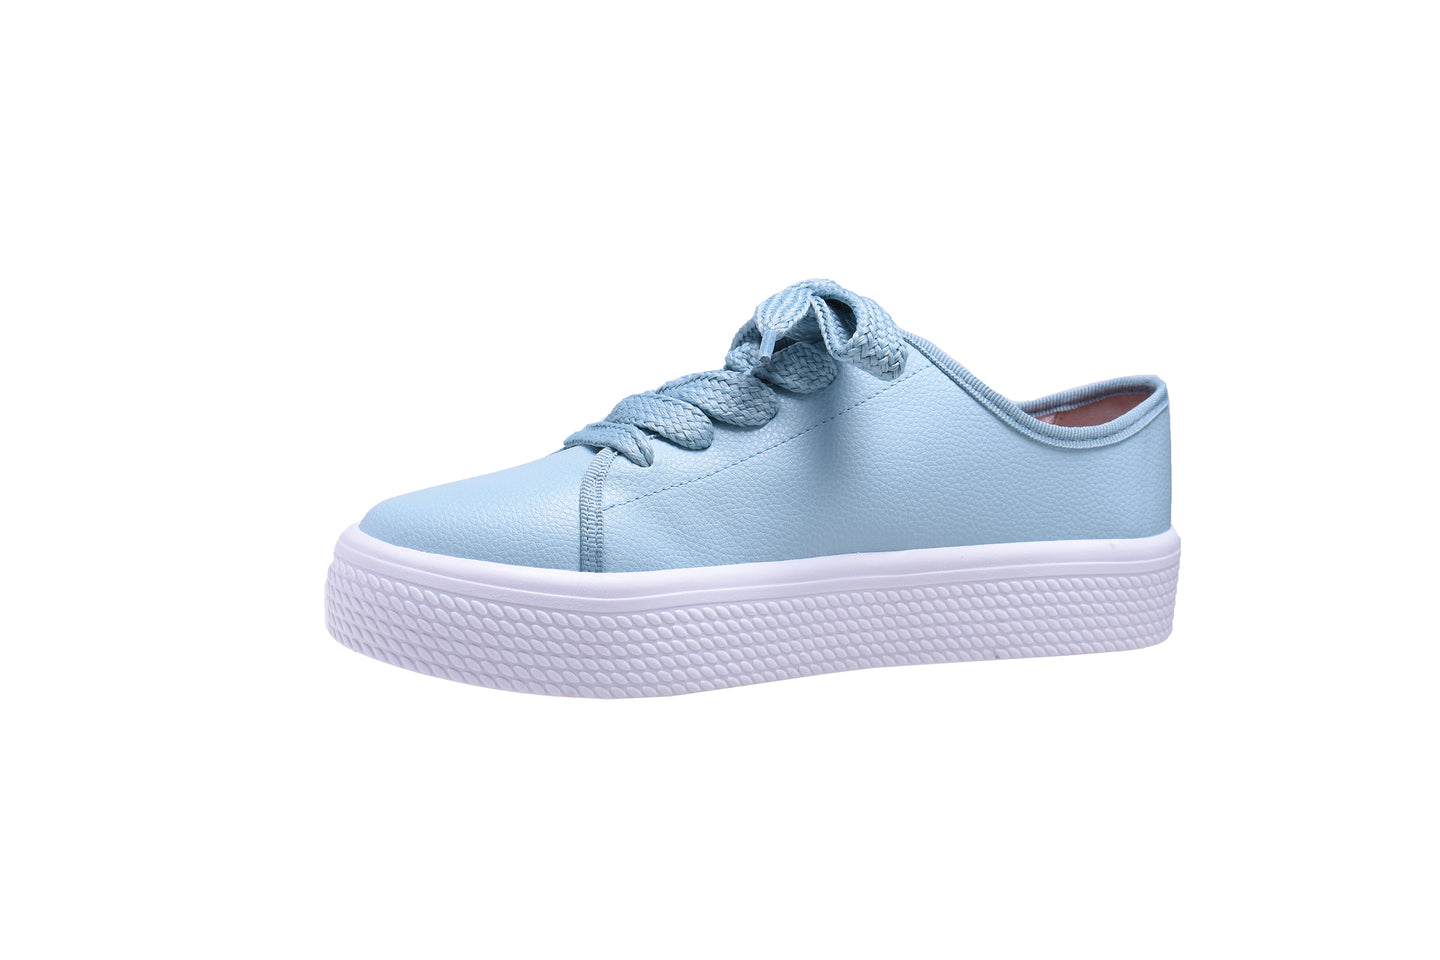 Aqua Blue, Napa Sneakers